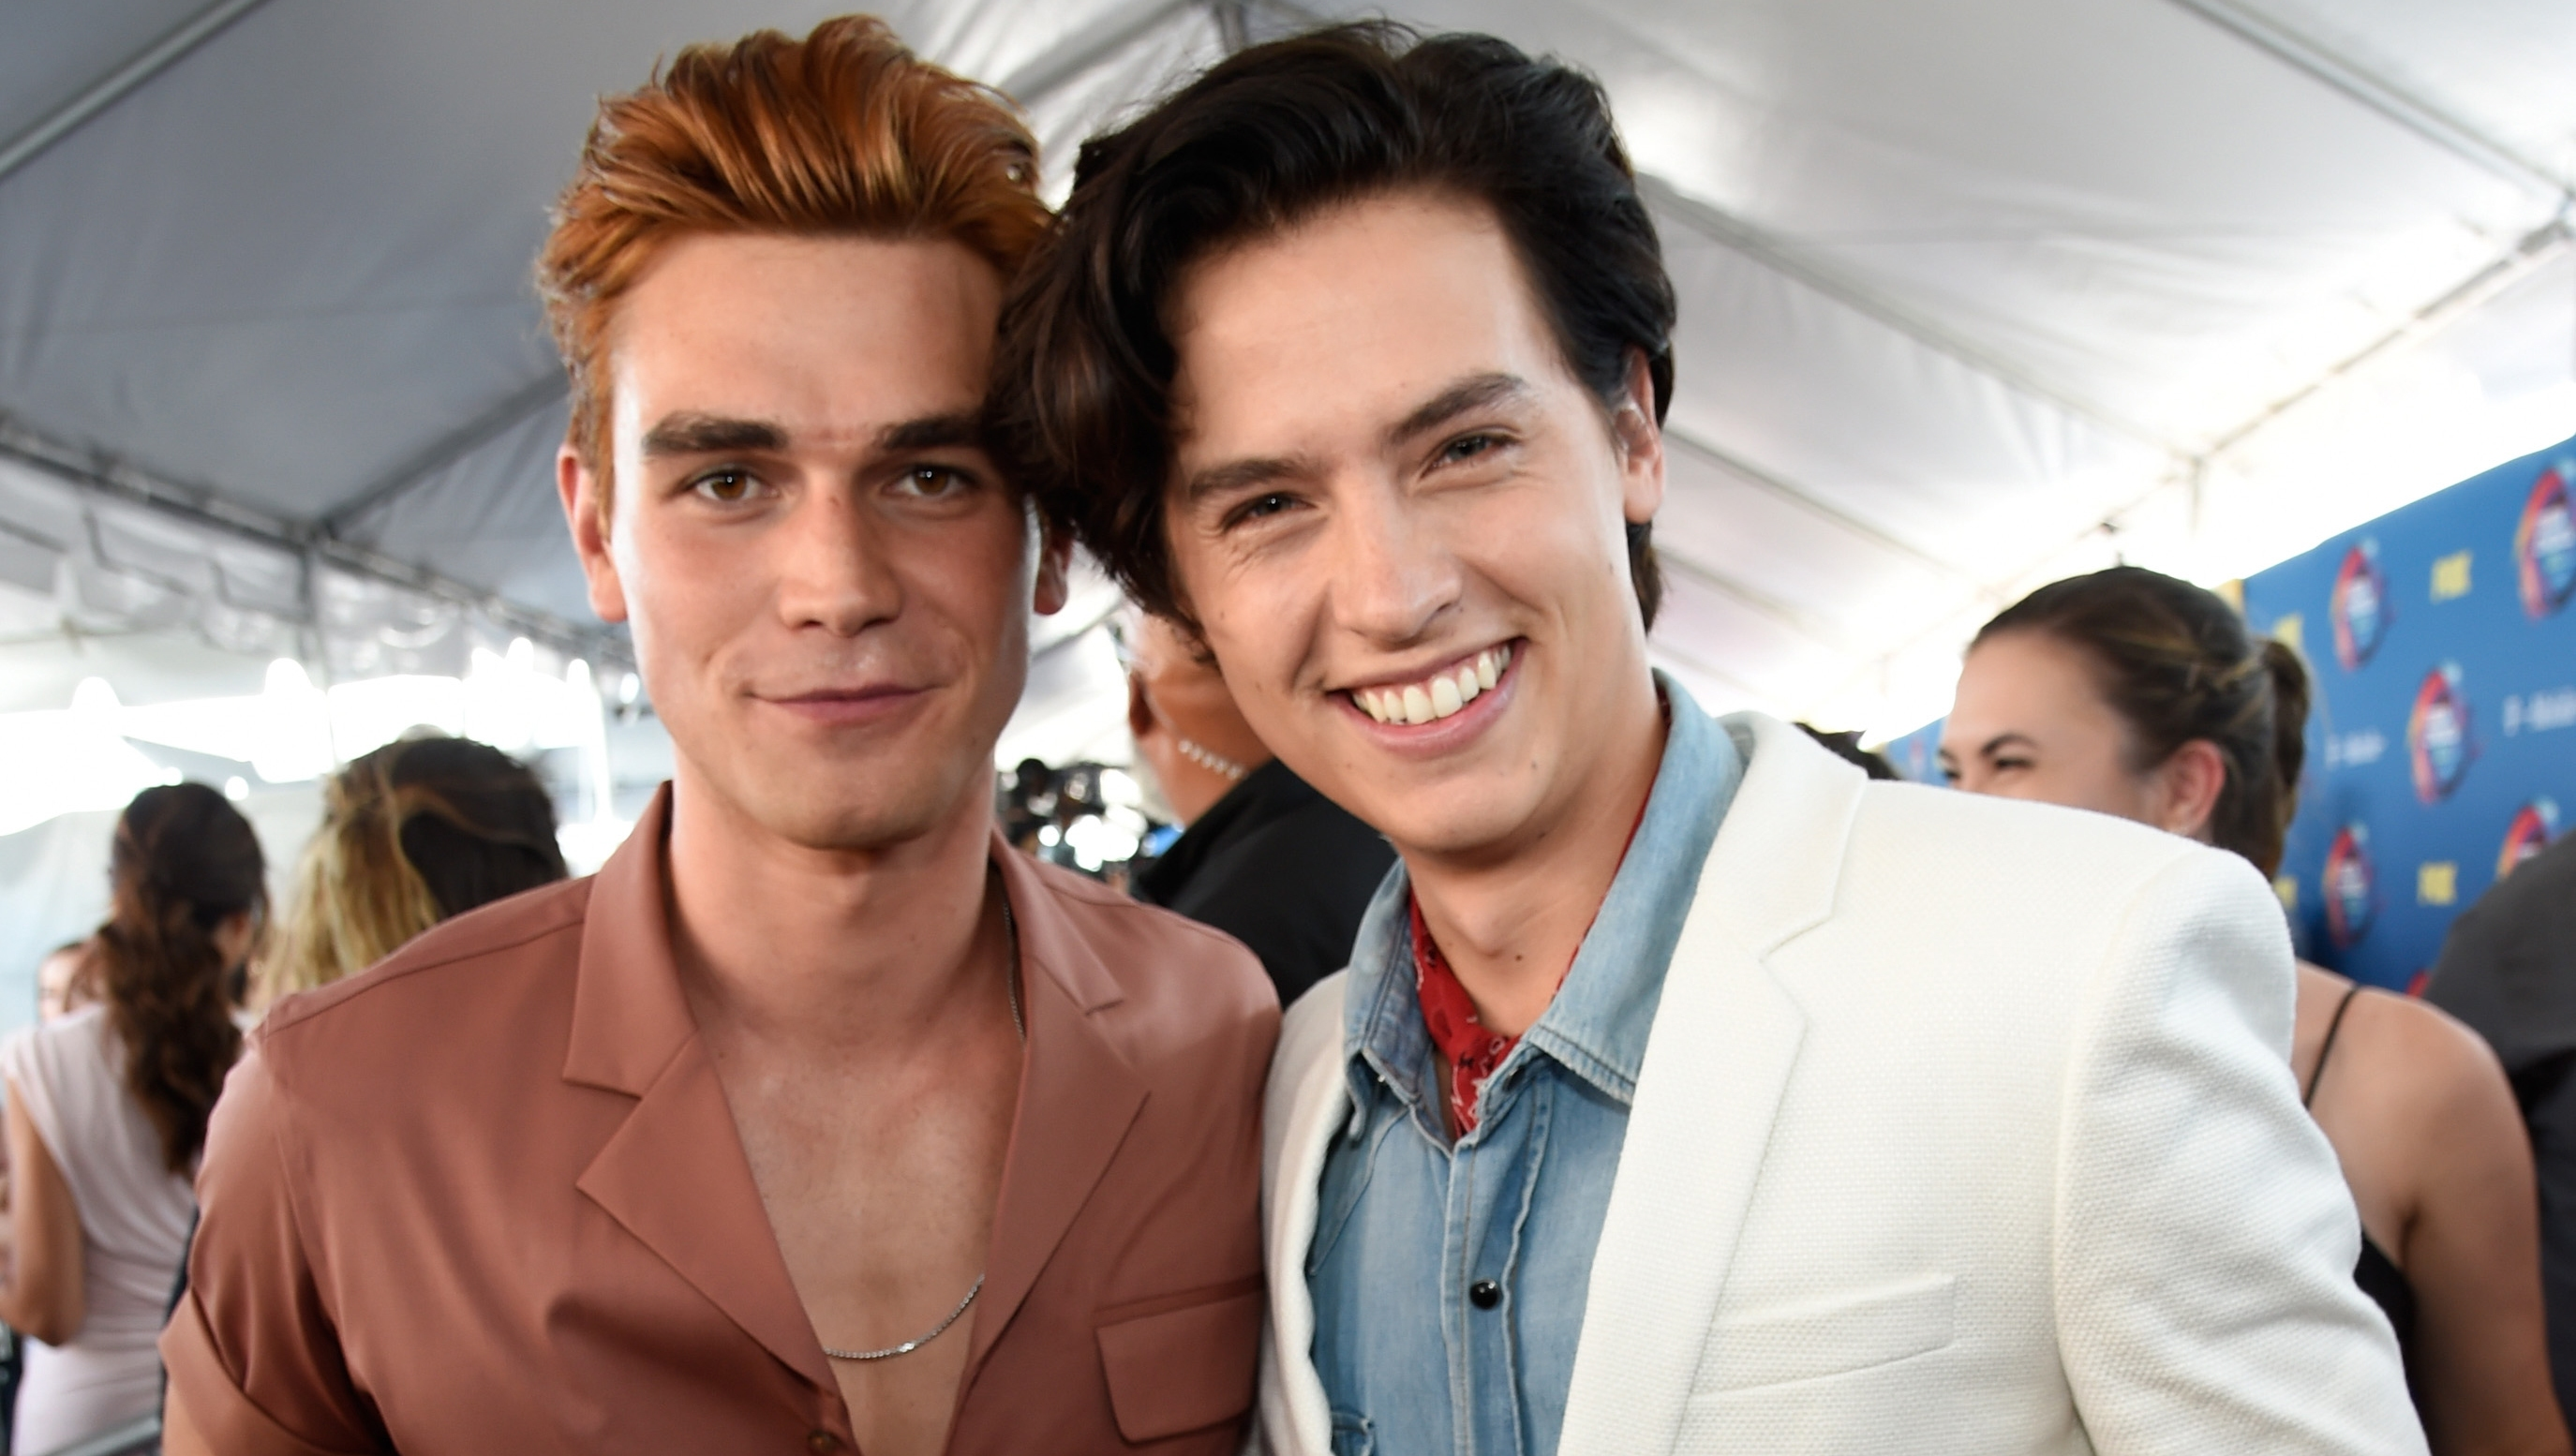 KJ Apa and Cole Sprouse